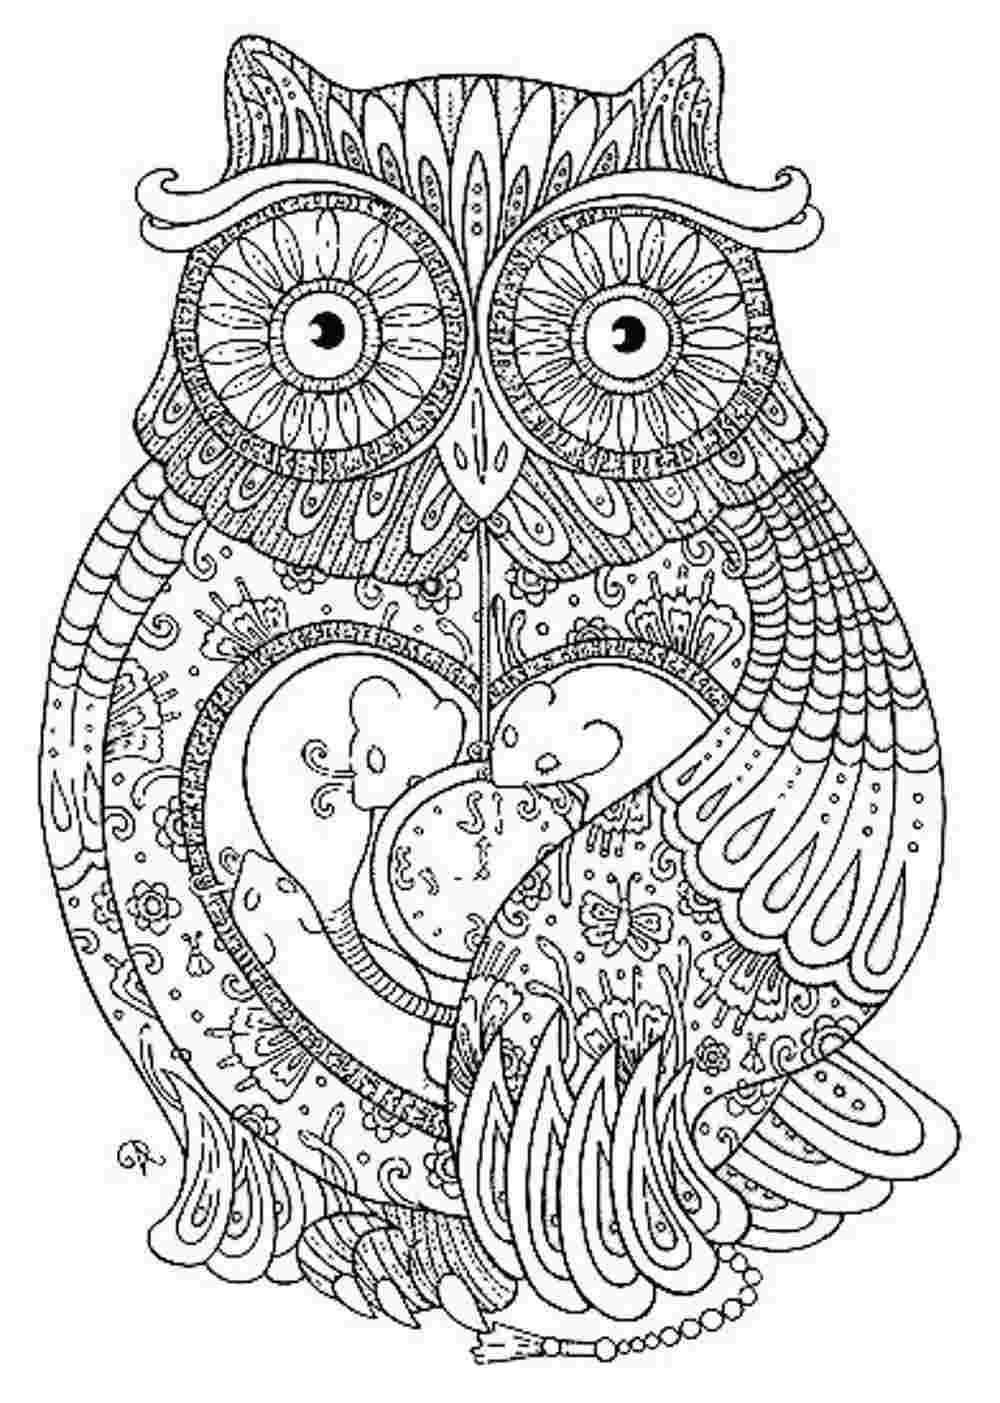 Animal Mandala Coloring Pages To Download And Print For Free Owl